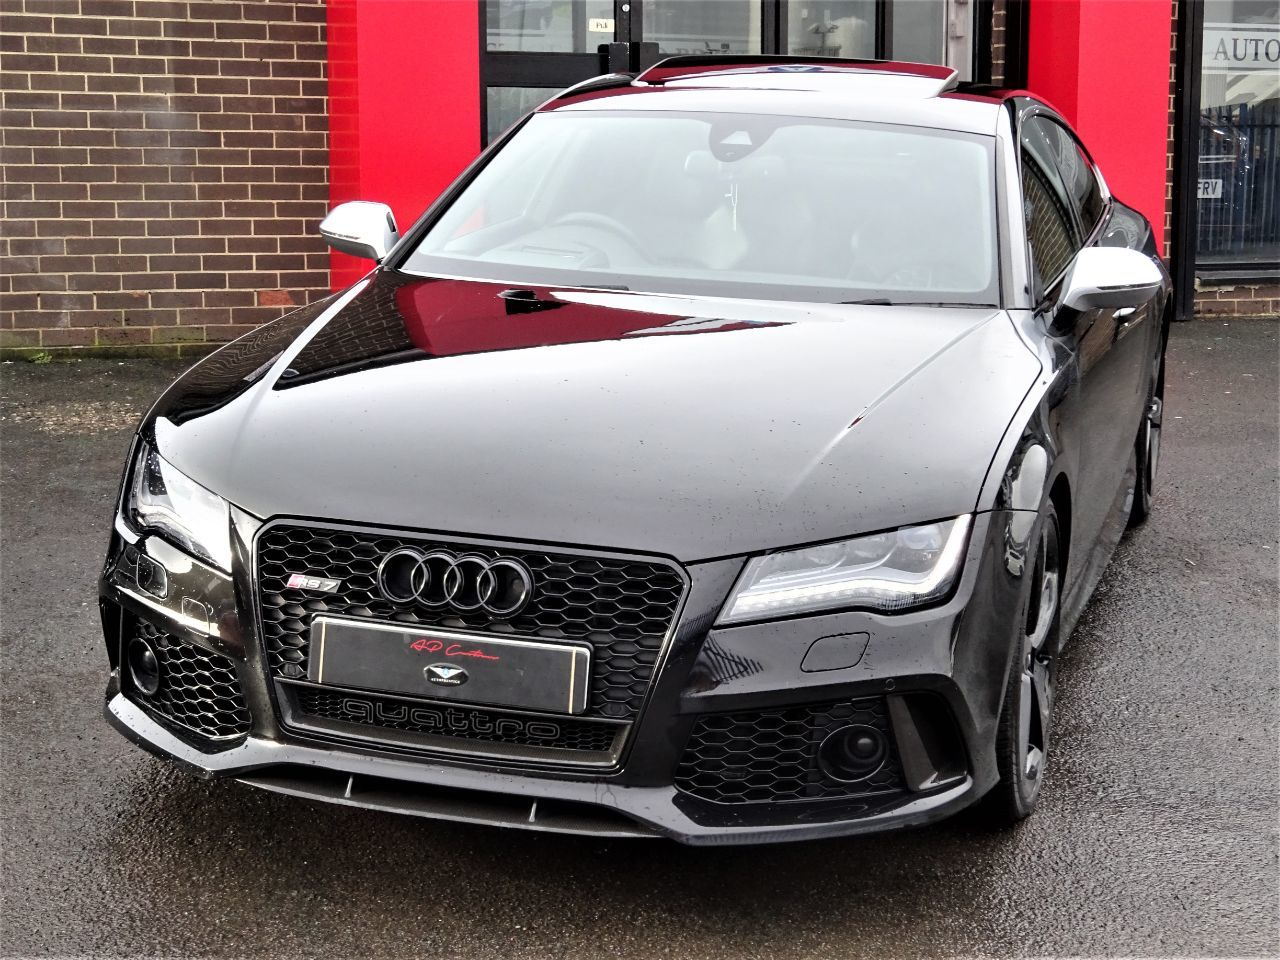 Audi RS7 4.0T FSI V8 Bi-Turbo Quattro Tip Auto EVERY EXTRA NIGHT VISION MASSIVE HISTORY FILE ONE OF THE BEST Hatchback Petrol Black at Autoprestige Bradford